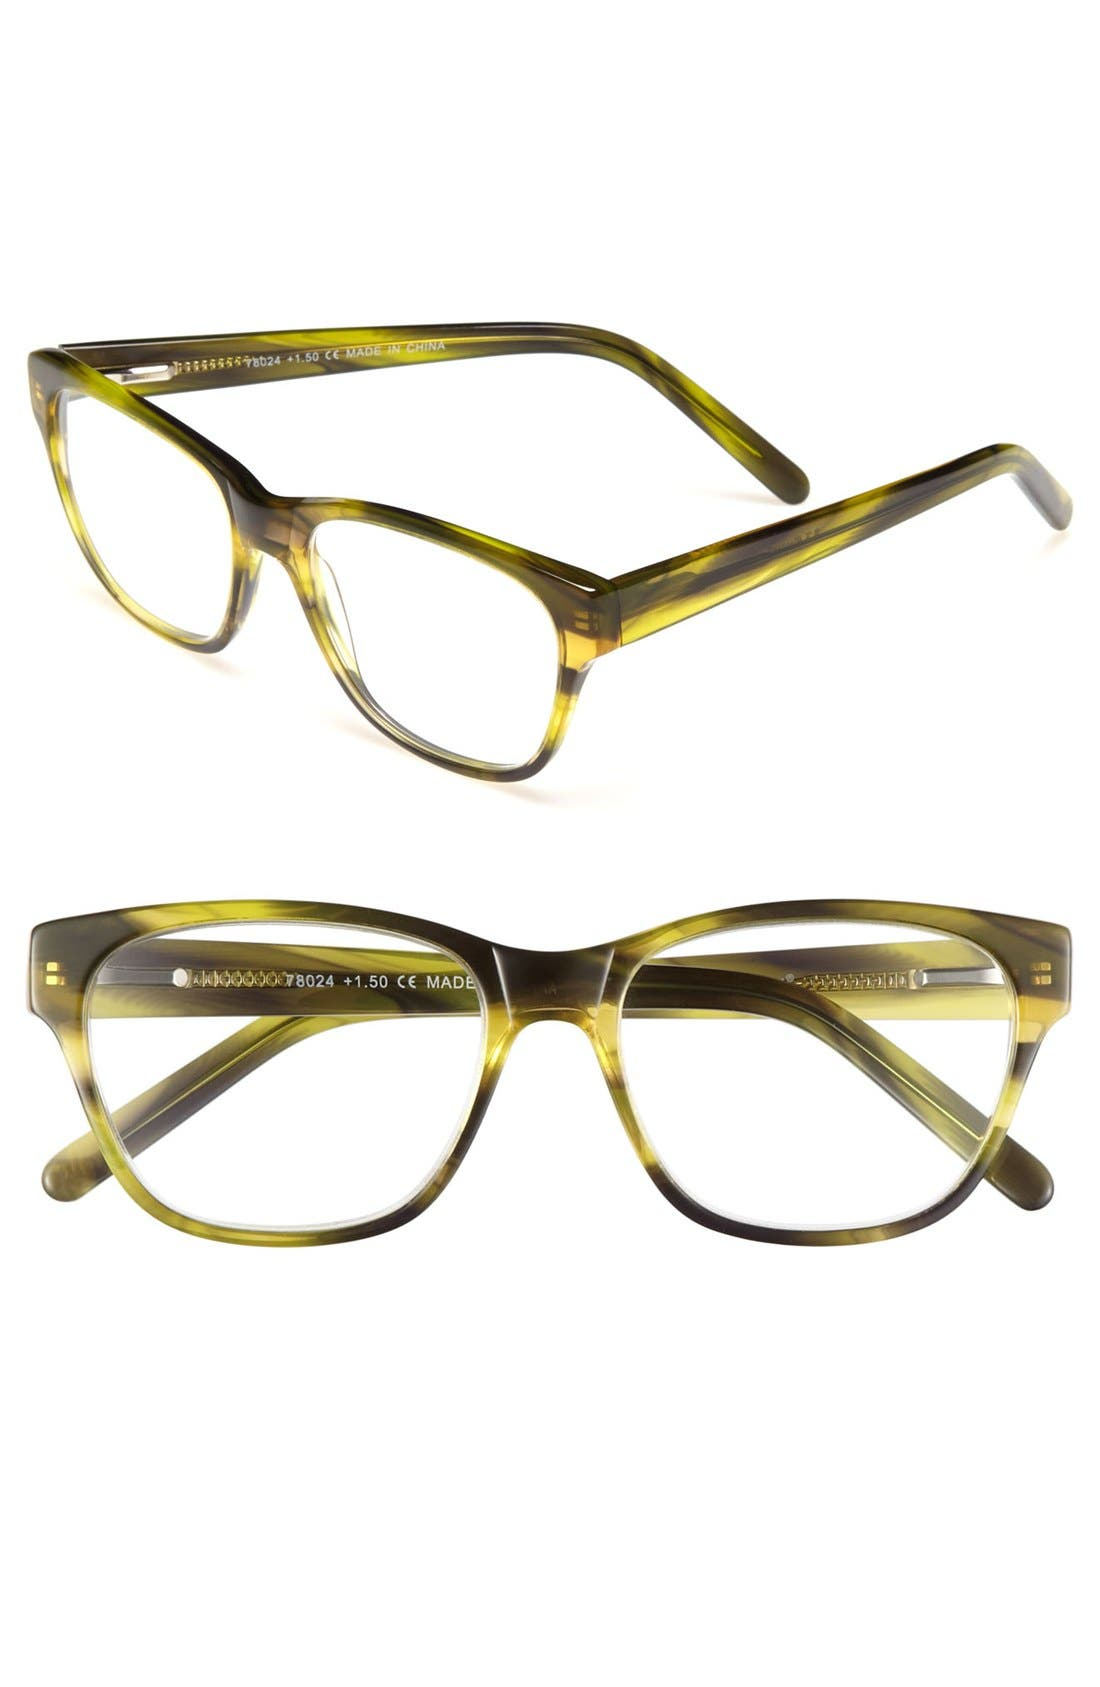 Alternate Image 1 Selected - A.J. Morgan 'Primary' Reading Glasses (Online Only)